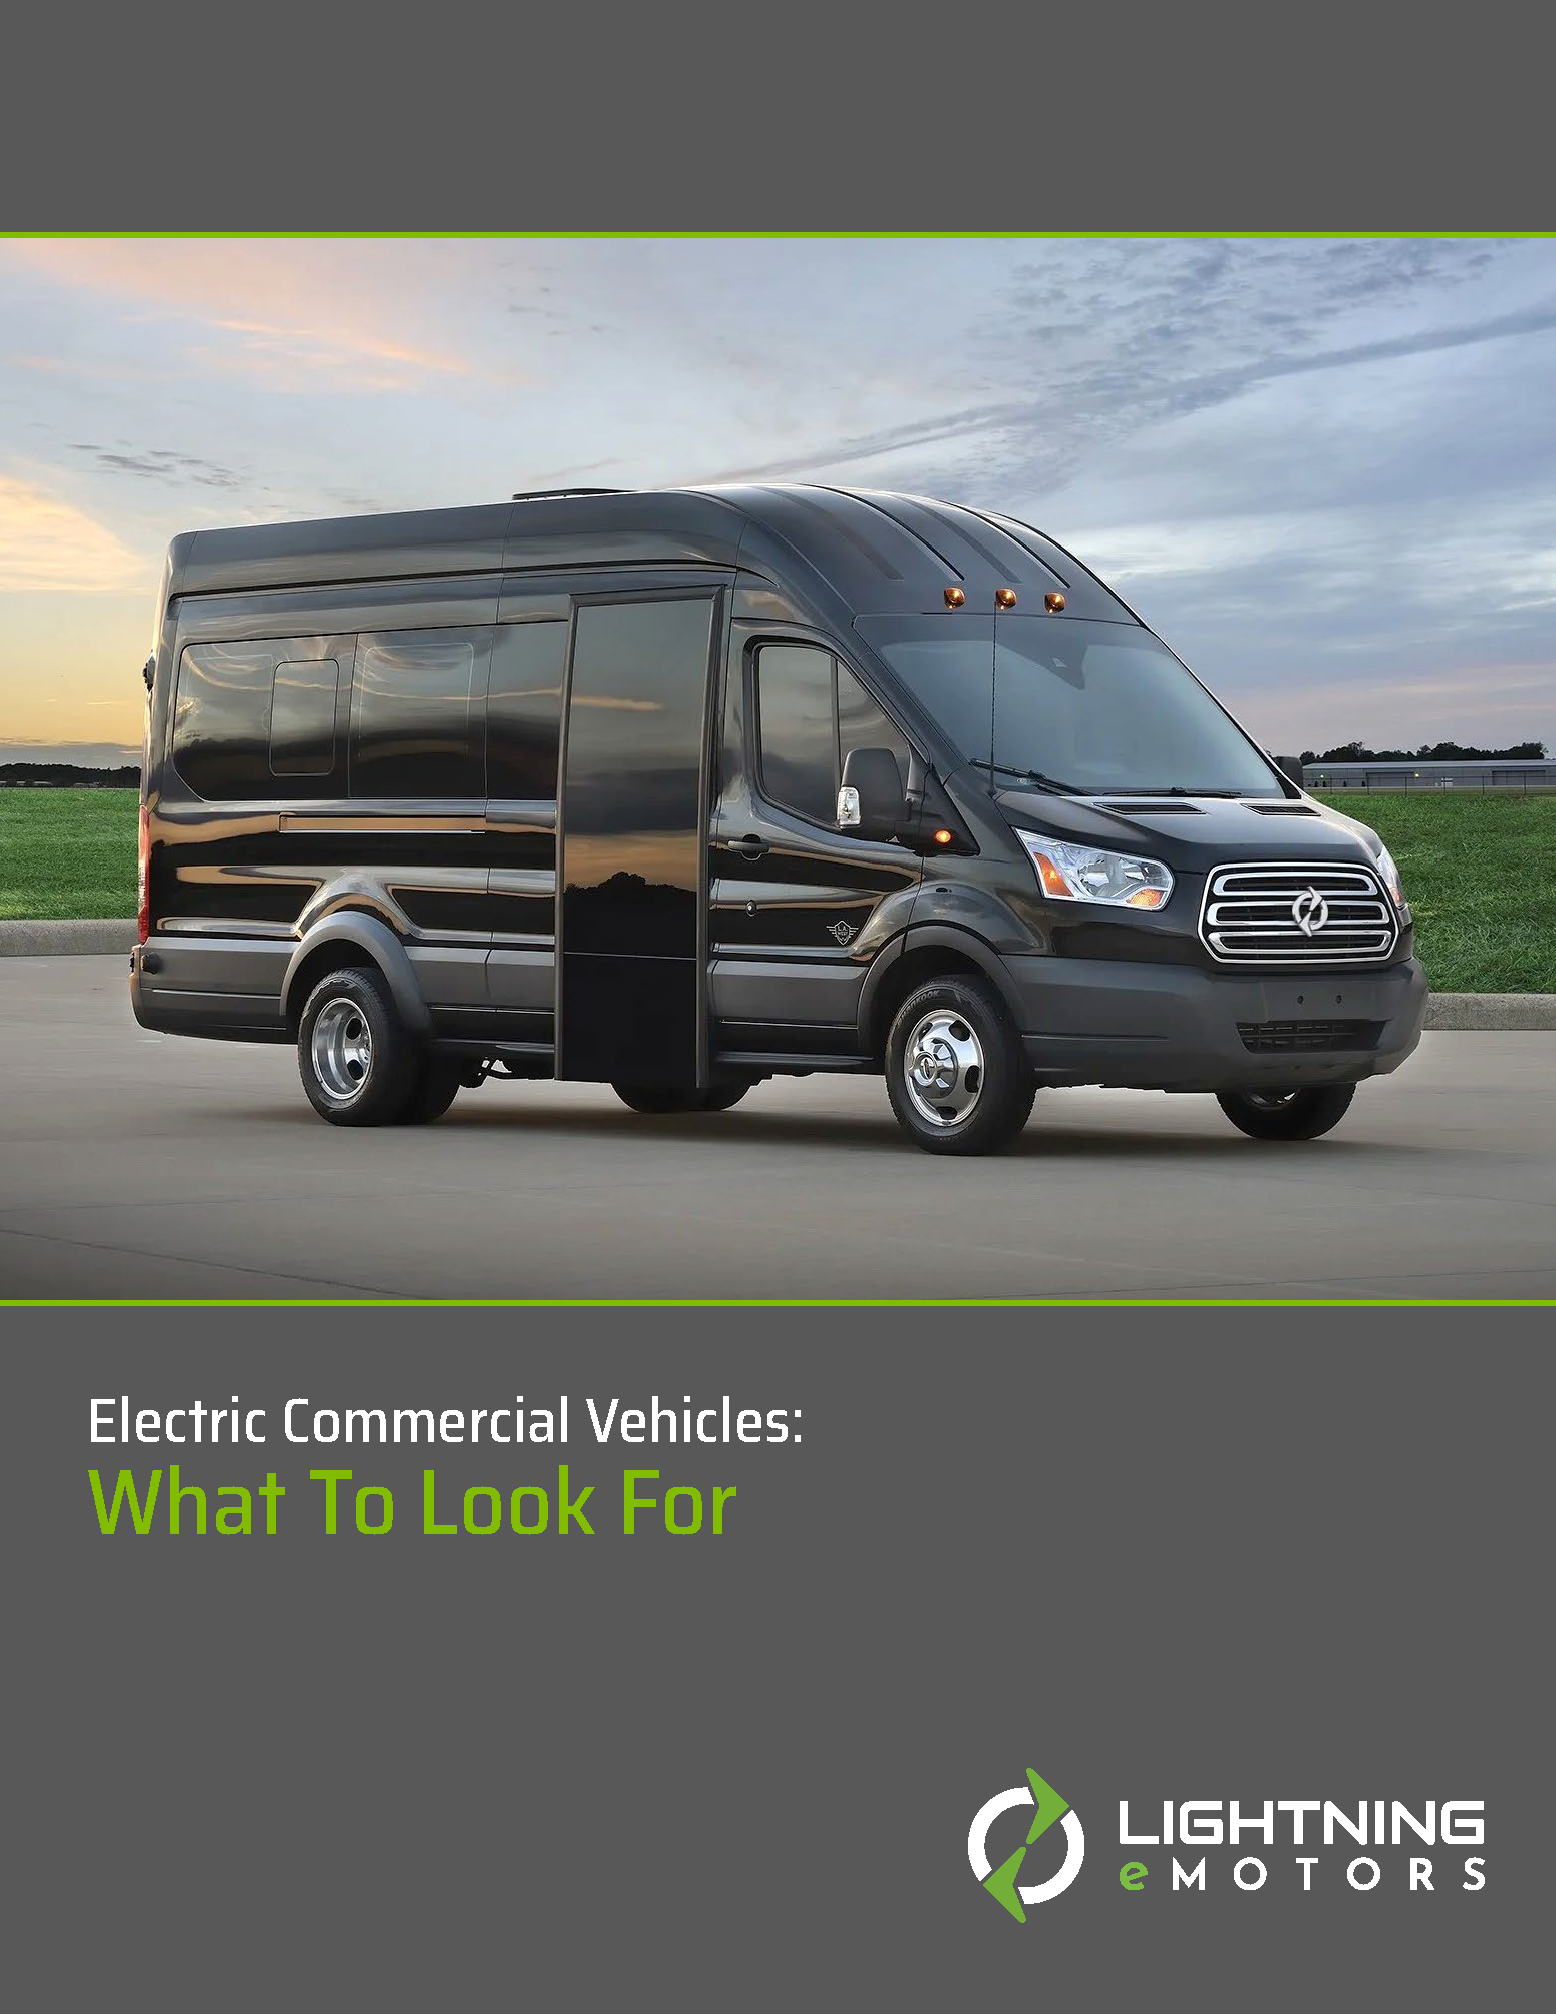 Electric Commercial Vehicles: What To Look For